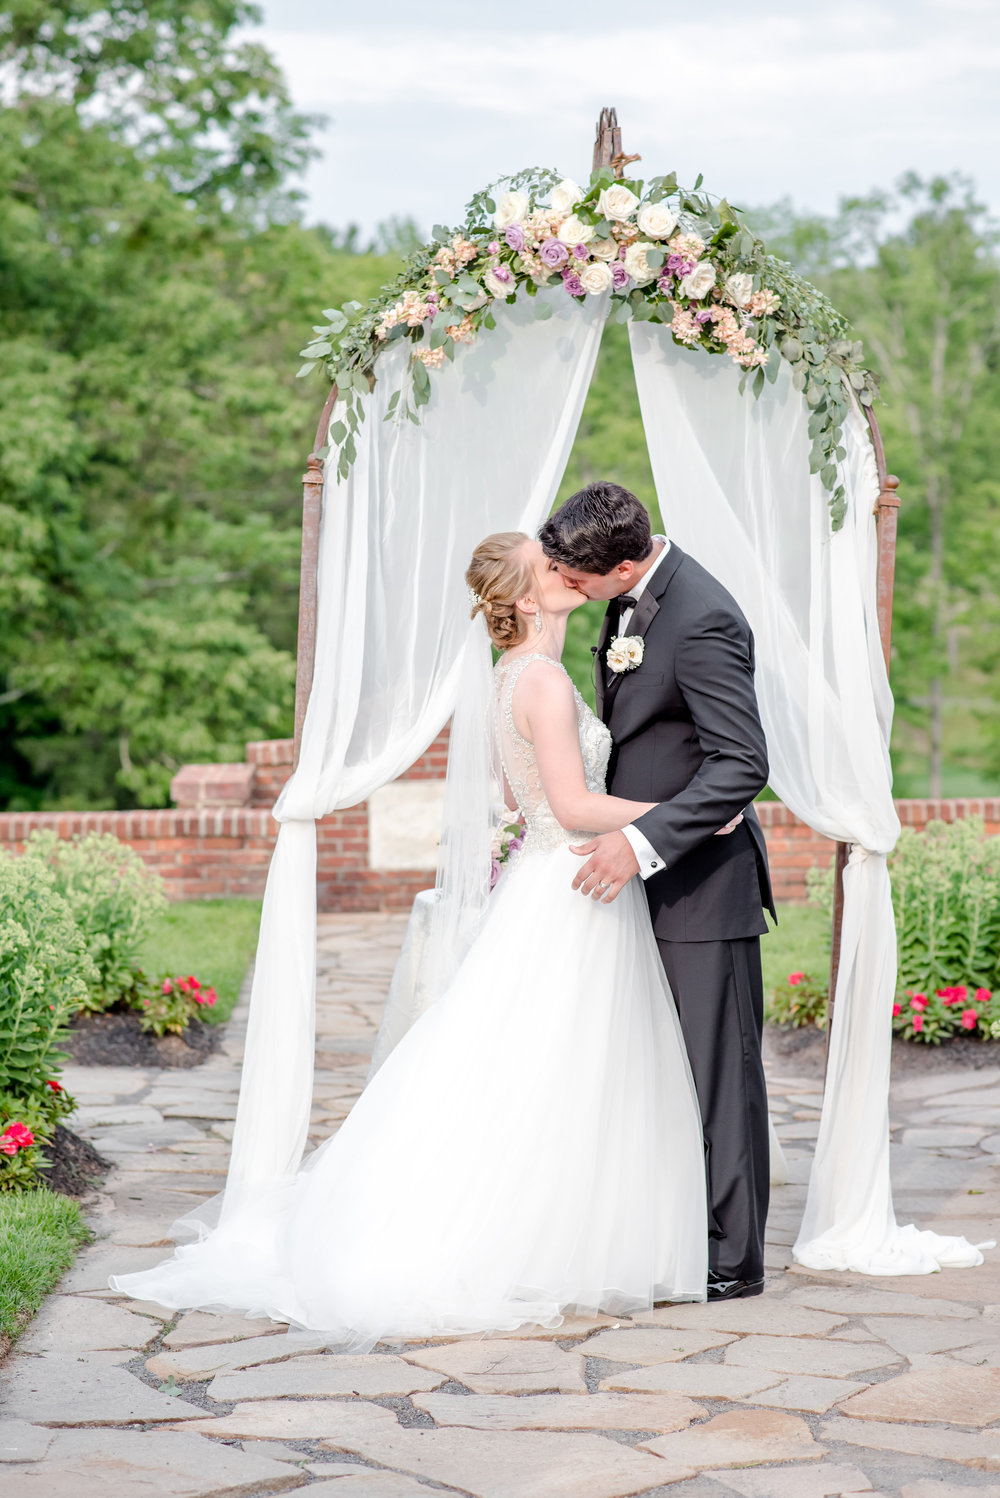 FAVORITES-2016-07-16KaylinandJohnWedding57812-113.jpg